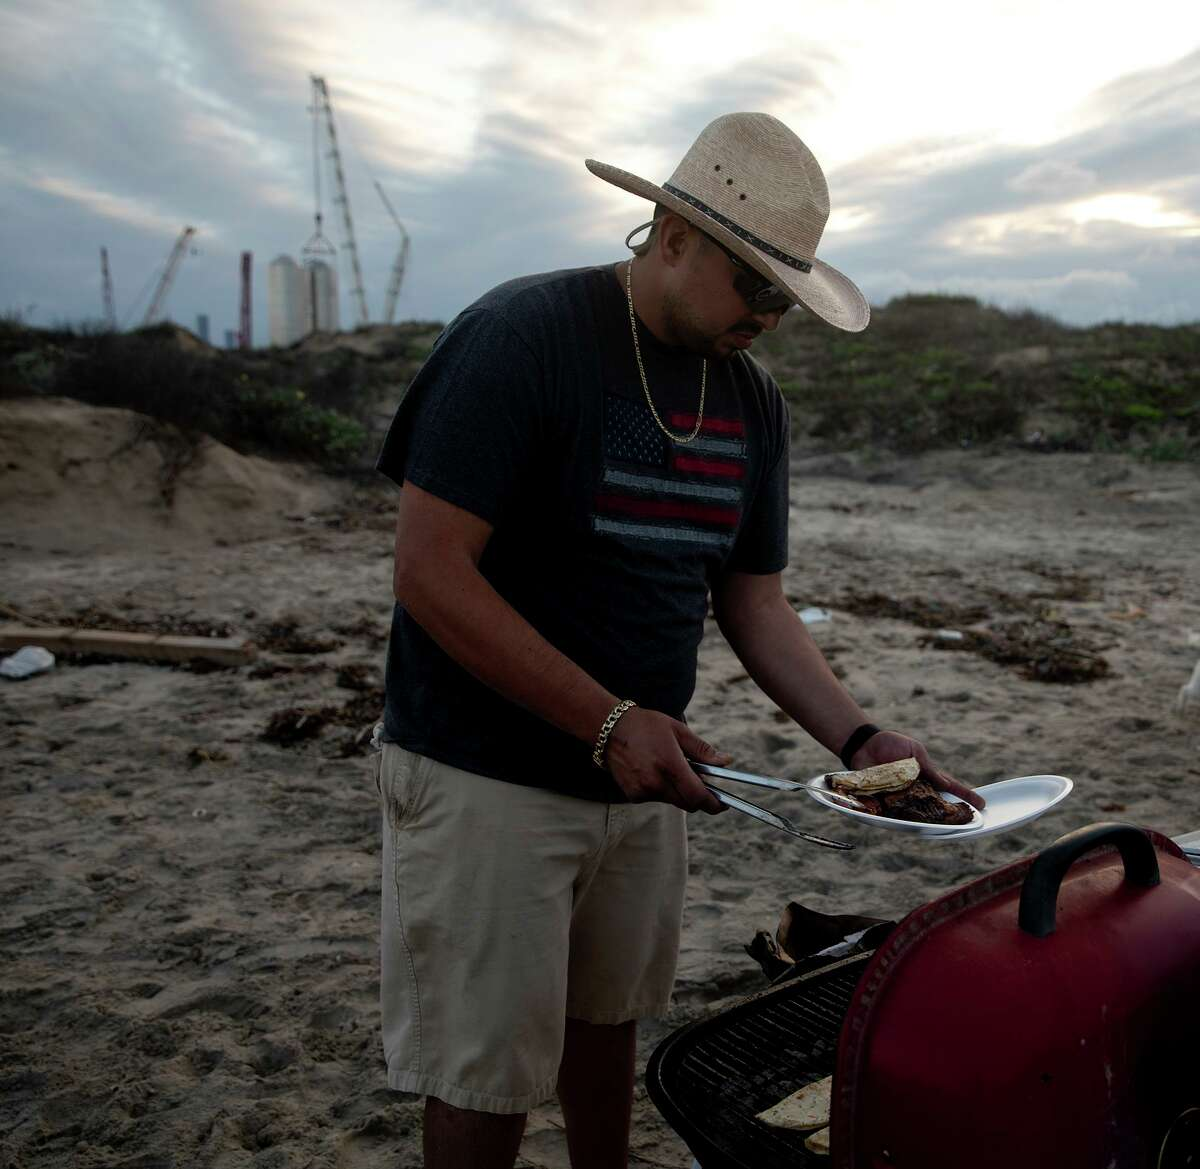 Jesus Chavez plates his food while his daughter Brianna Chavez wander behind him. The family came to Boca Chica beach to celebrate Brianna?•s 16th birthday. They were forced to wait on Highway 4, the only way into the beach, because SpaceX was moving equipment. Road closures from the space facility are common.